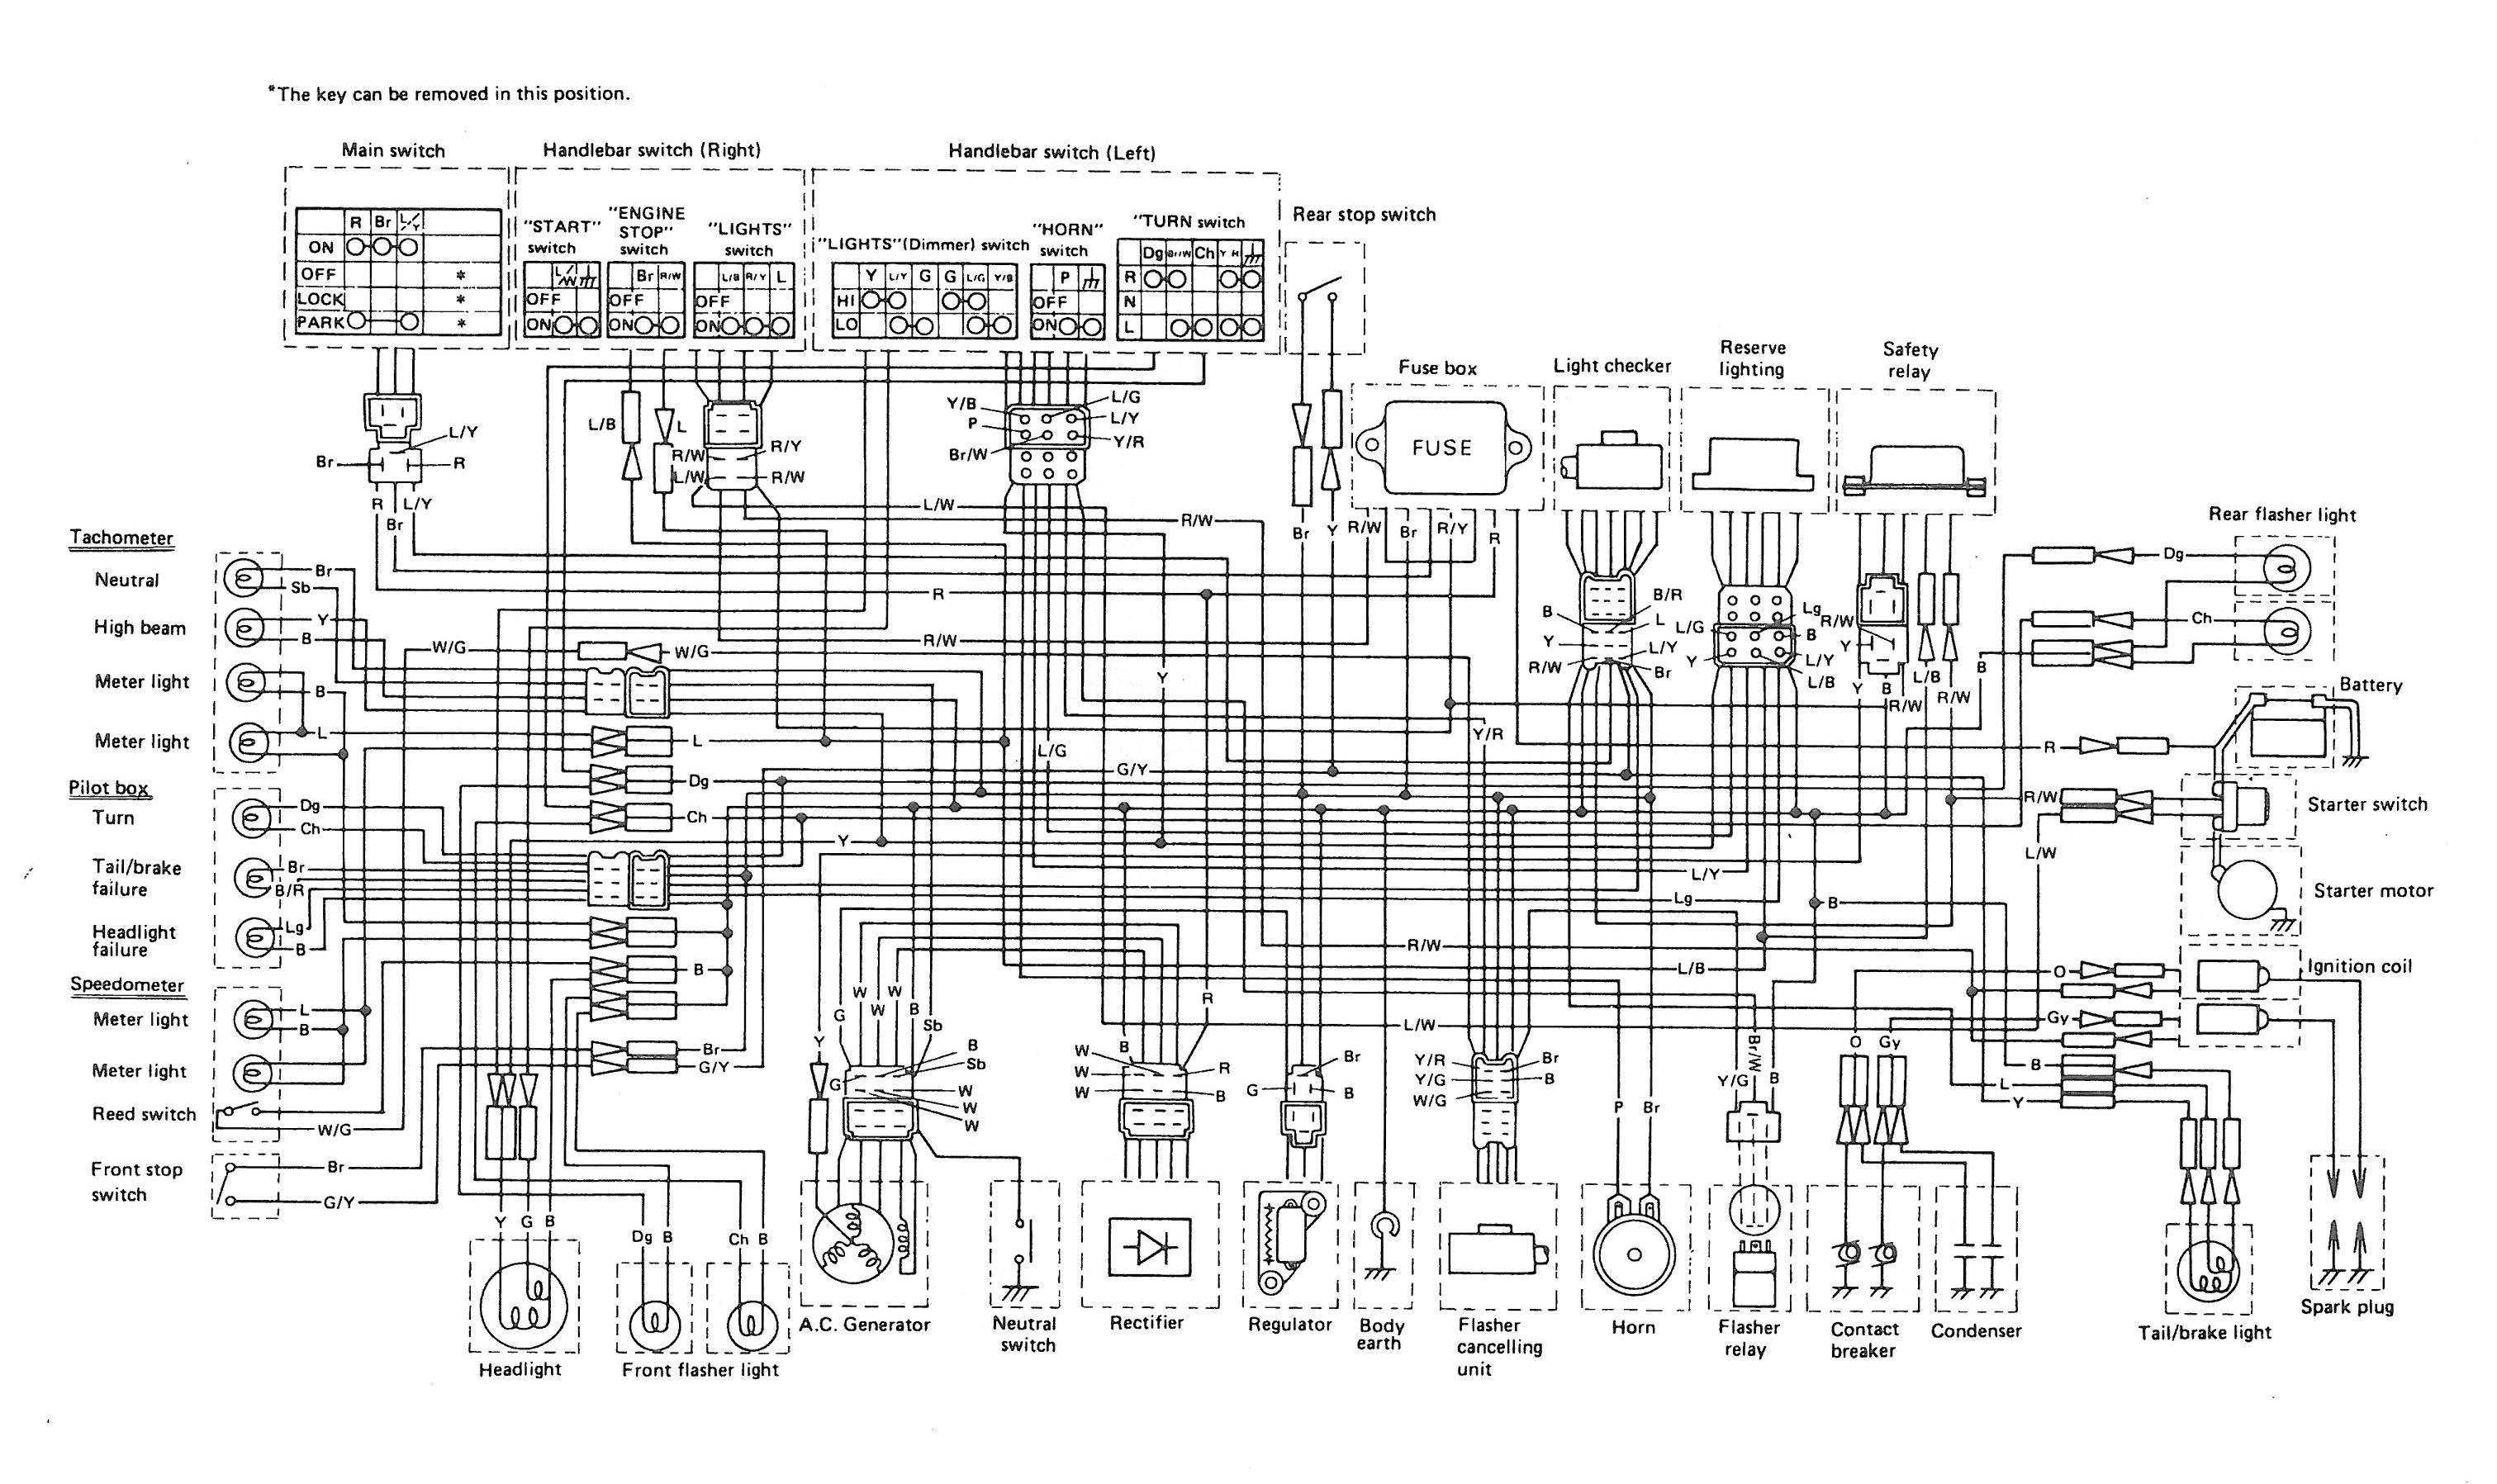 78 xsse wiring 6 1 elec diagram thexscafe 1980 yamaha xs400 wiring diagram at panicattacktreatment.co